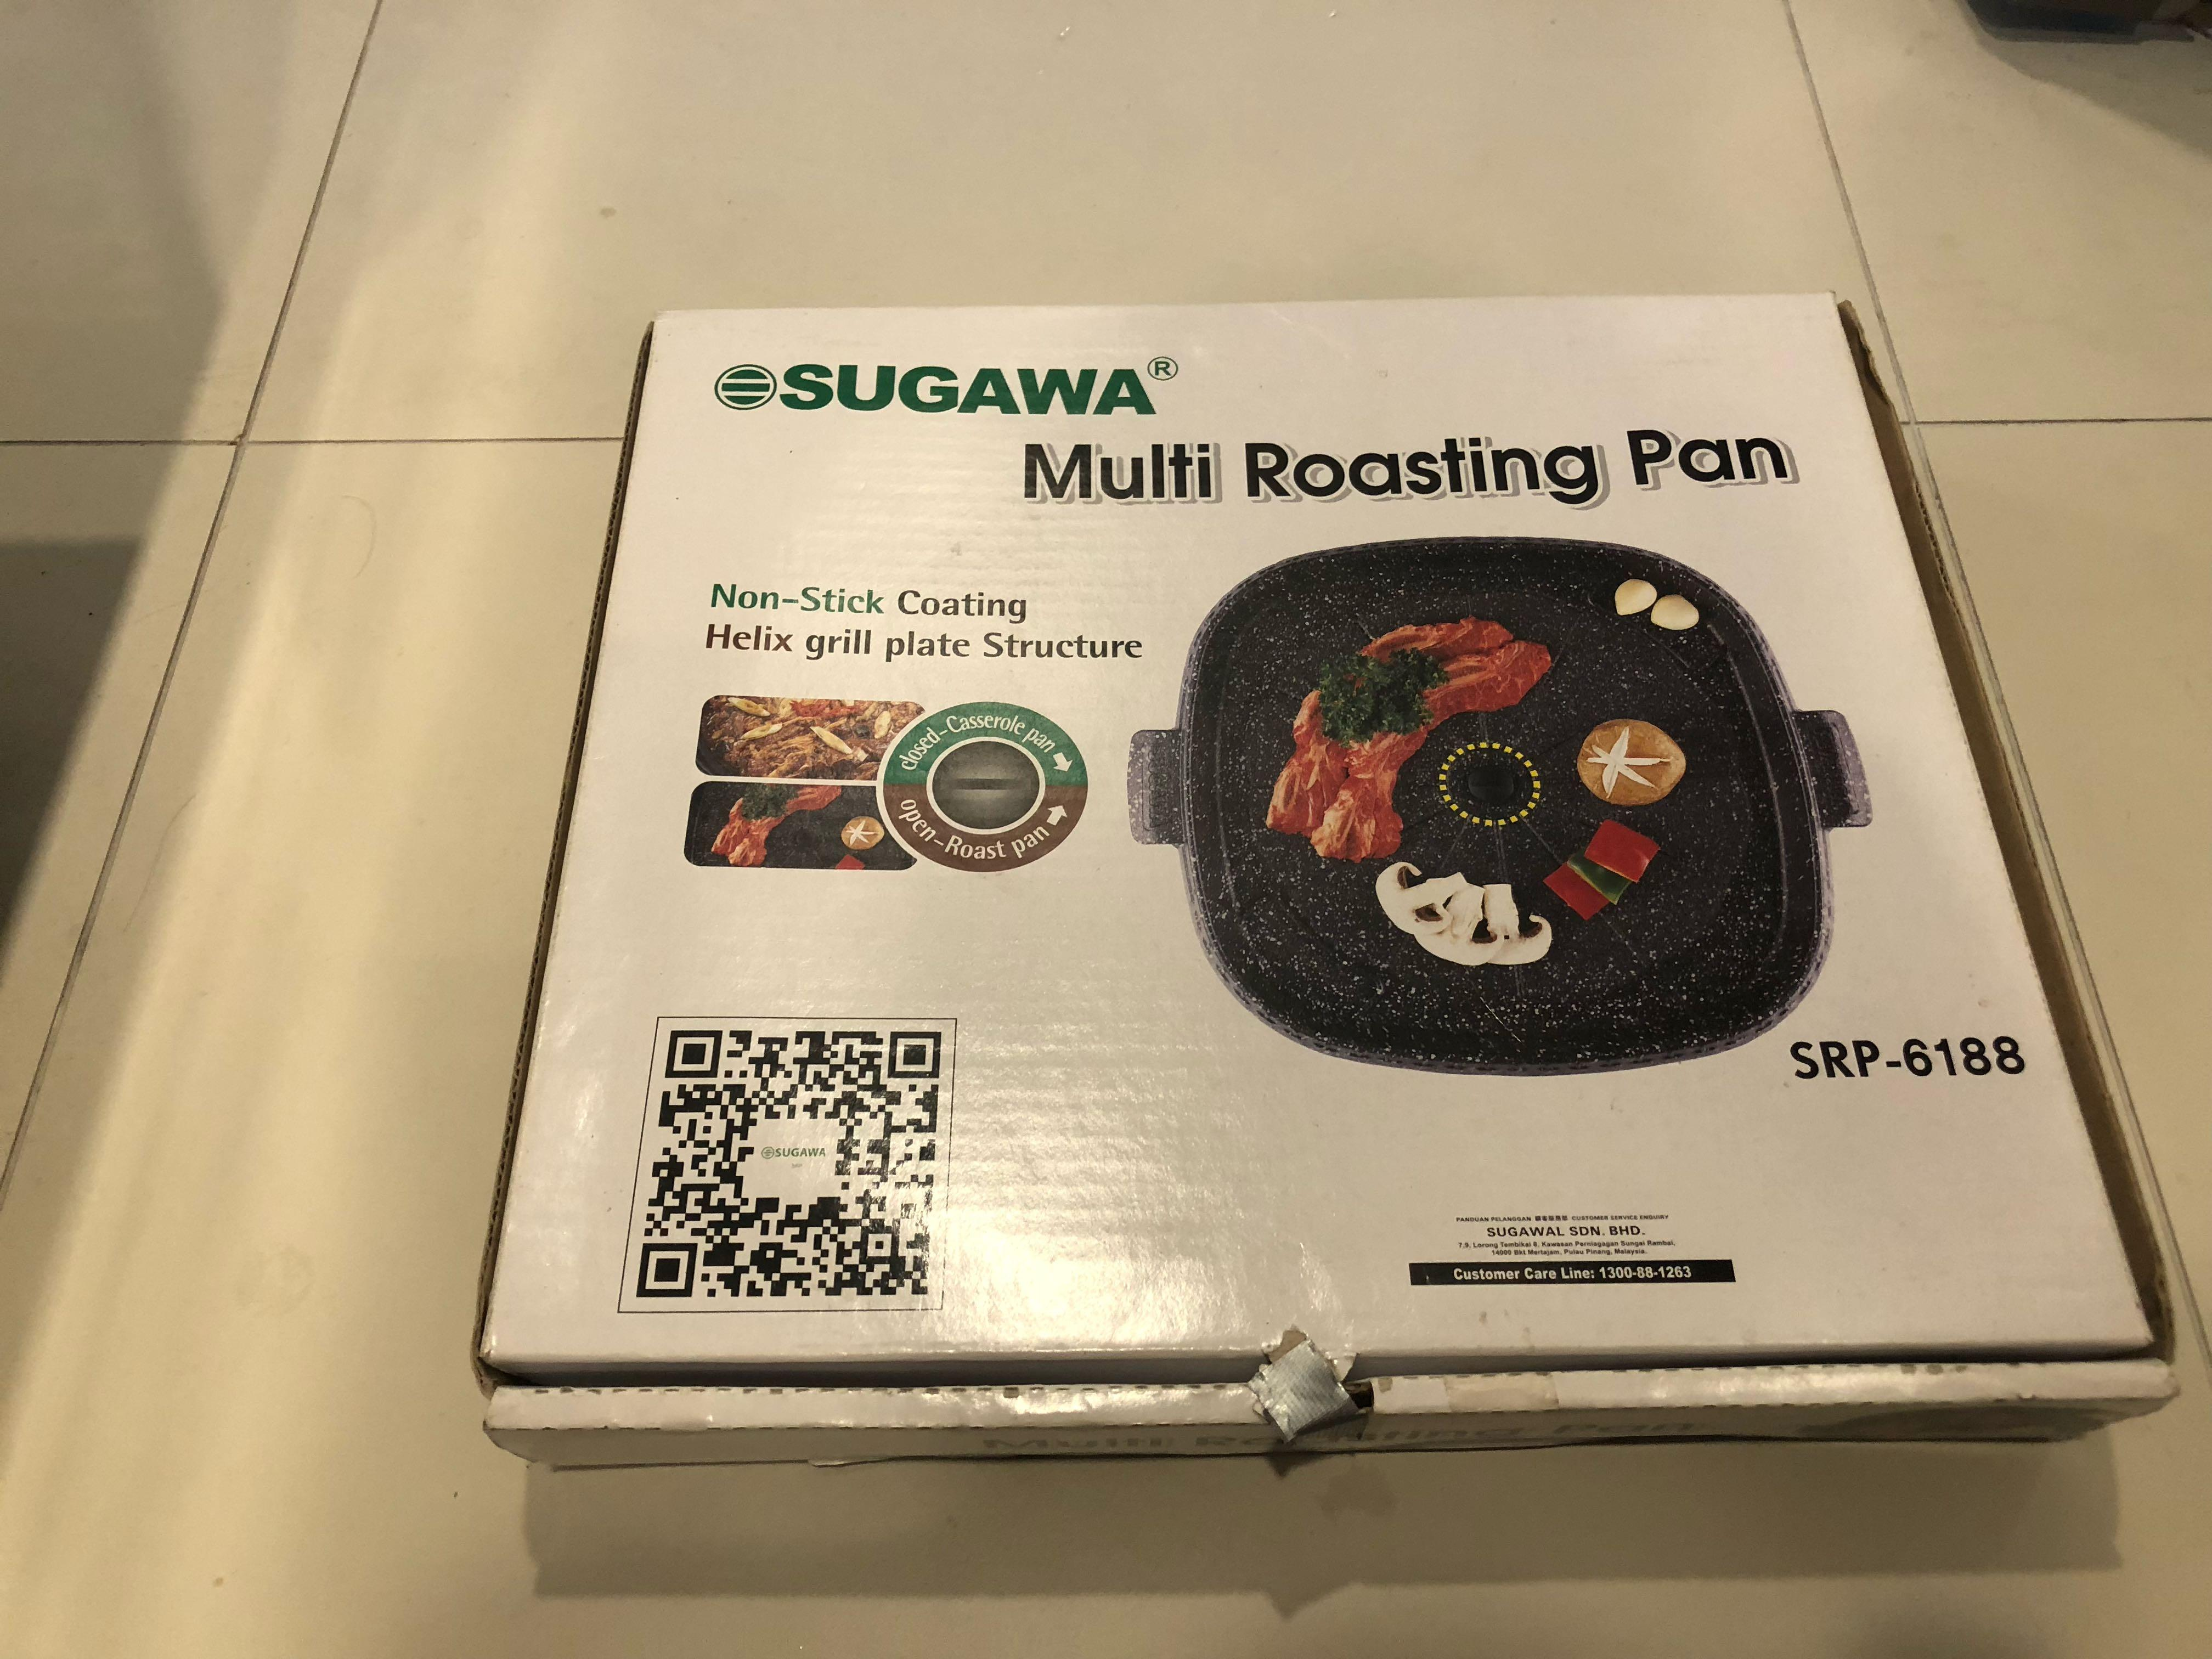 Sugawa Multi Roasting Pan